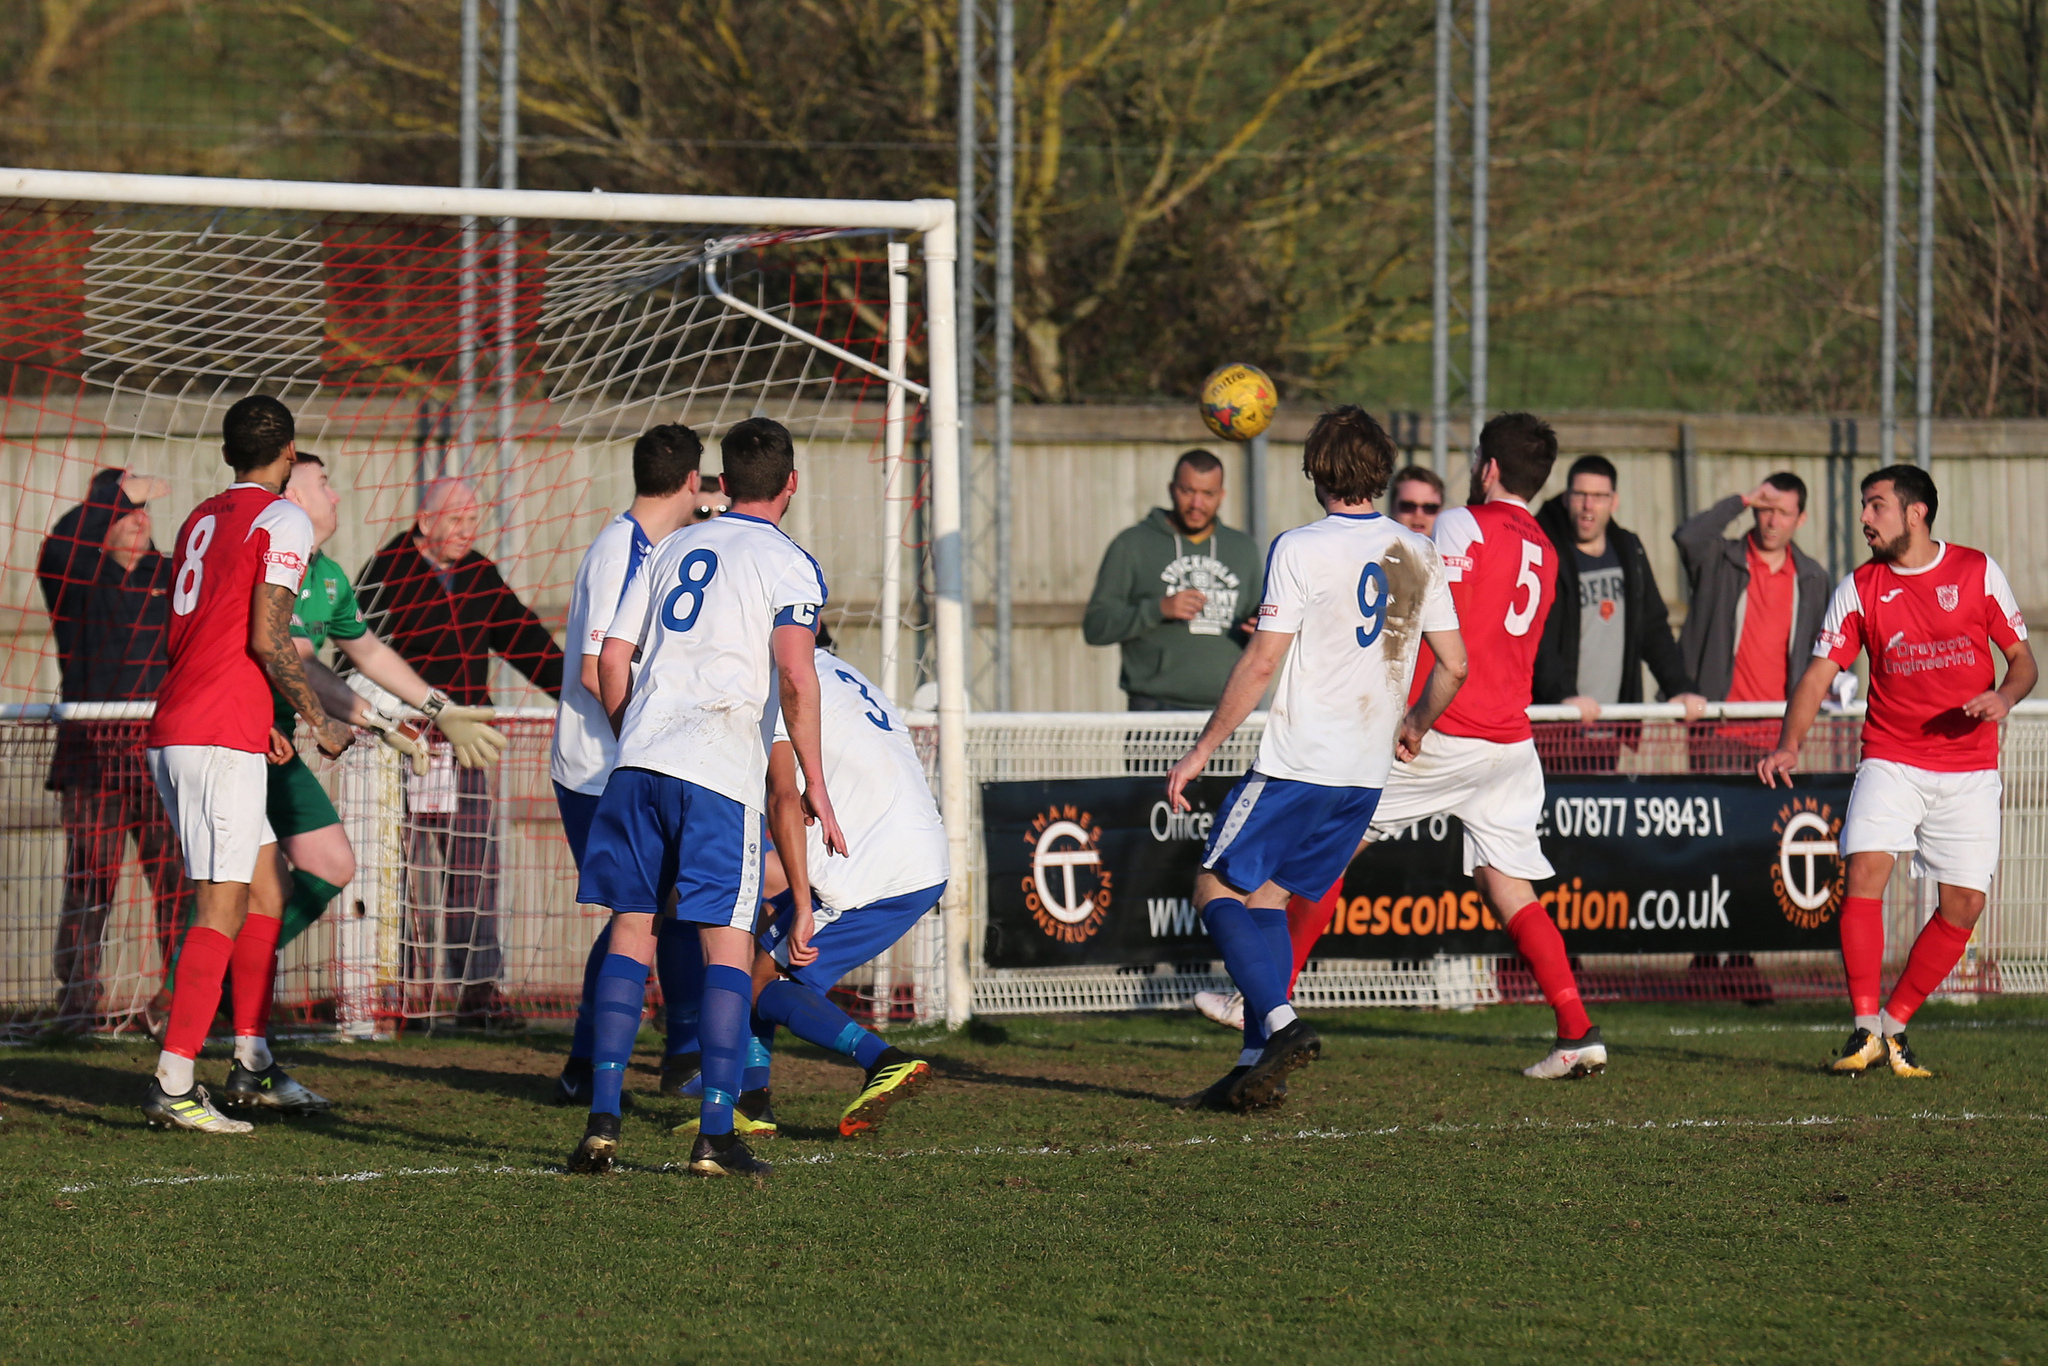 Luke Carnell (No 5) scores to give Didcot victoryPicture: Roger Neal